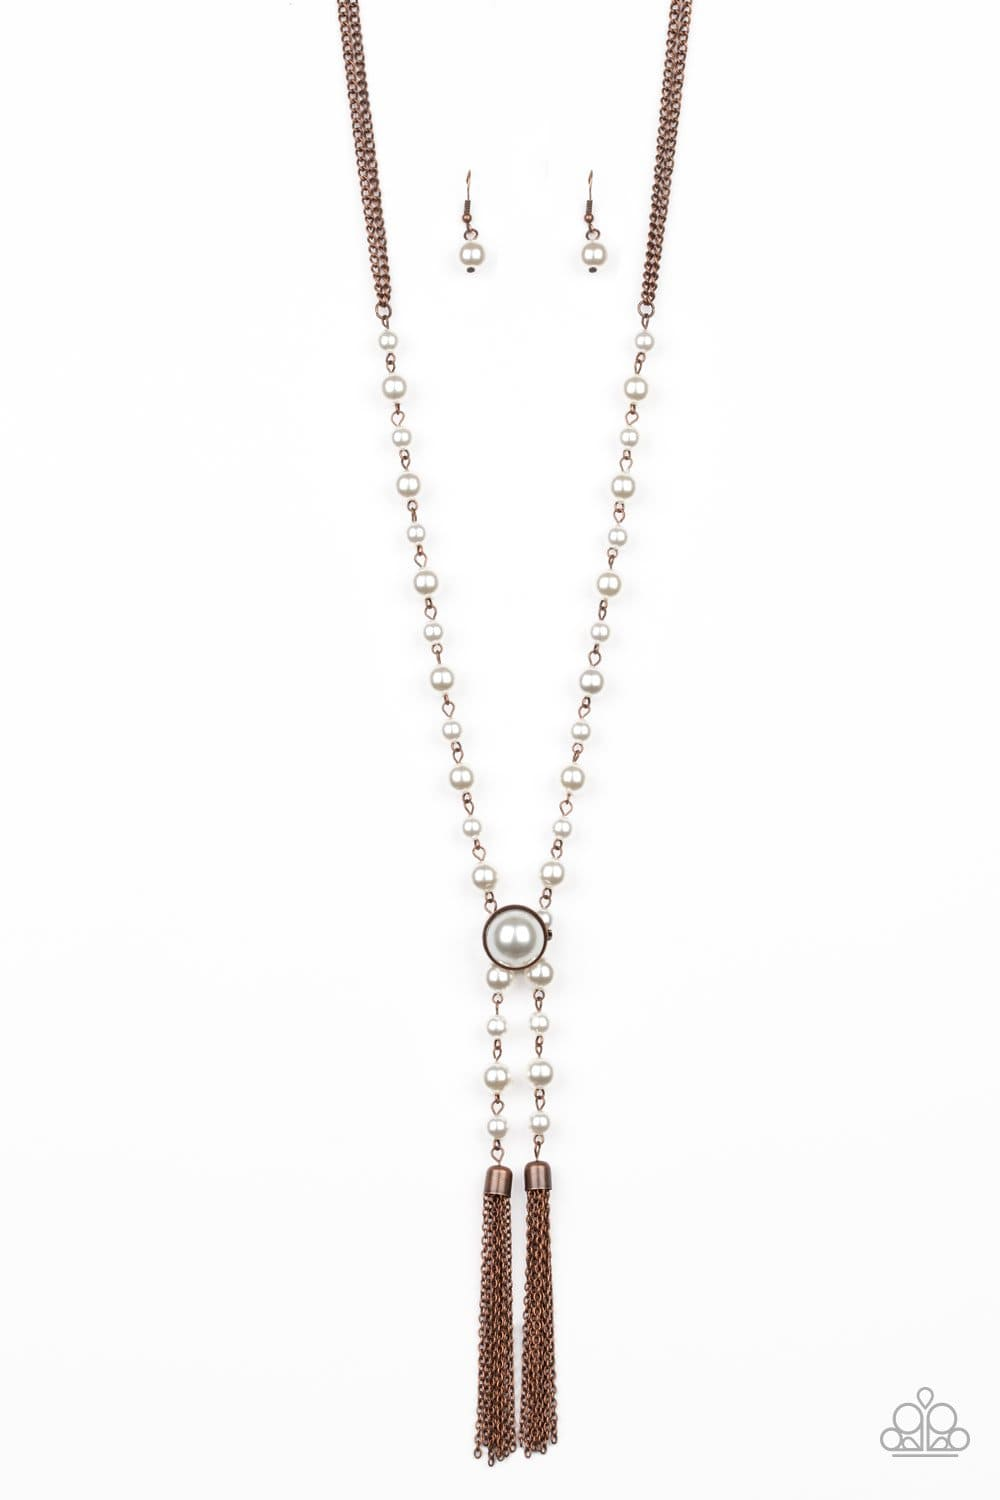 Paparazzi: Vintage Diva - Copper Pearl Tassel Necklace - Jewels N' Thingz Boutique